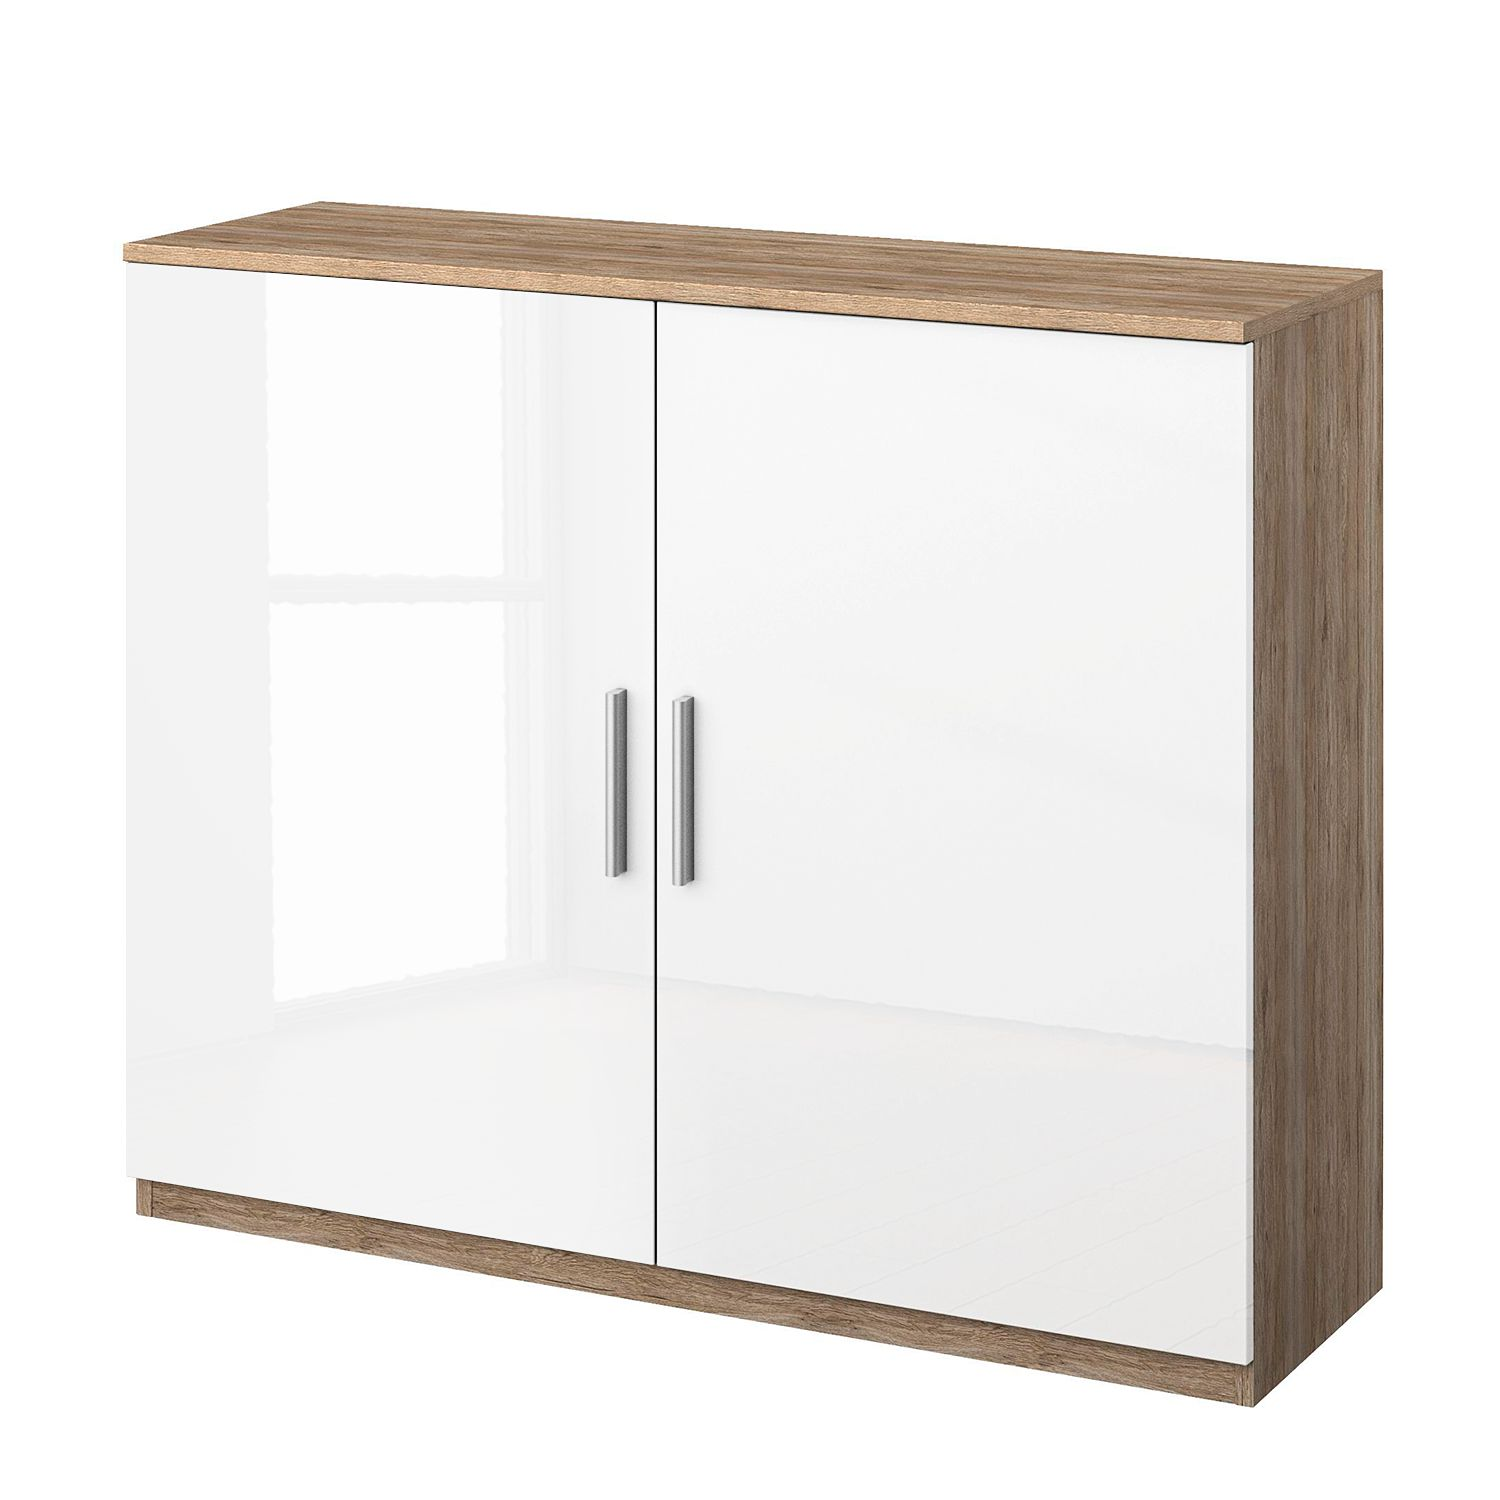 Commode Celle I - Blanc brillant / Imitation chêne de San Remo clair, Rauch Packs